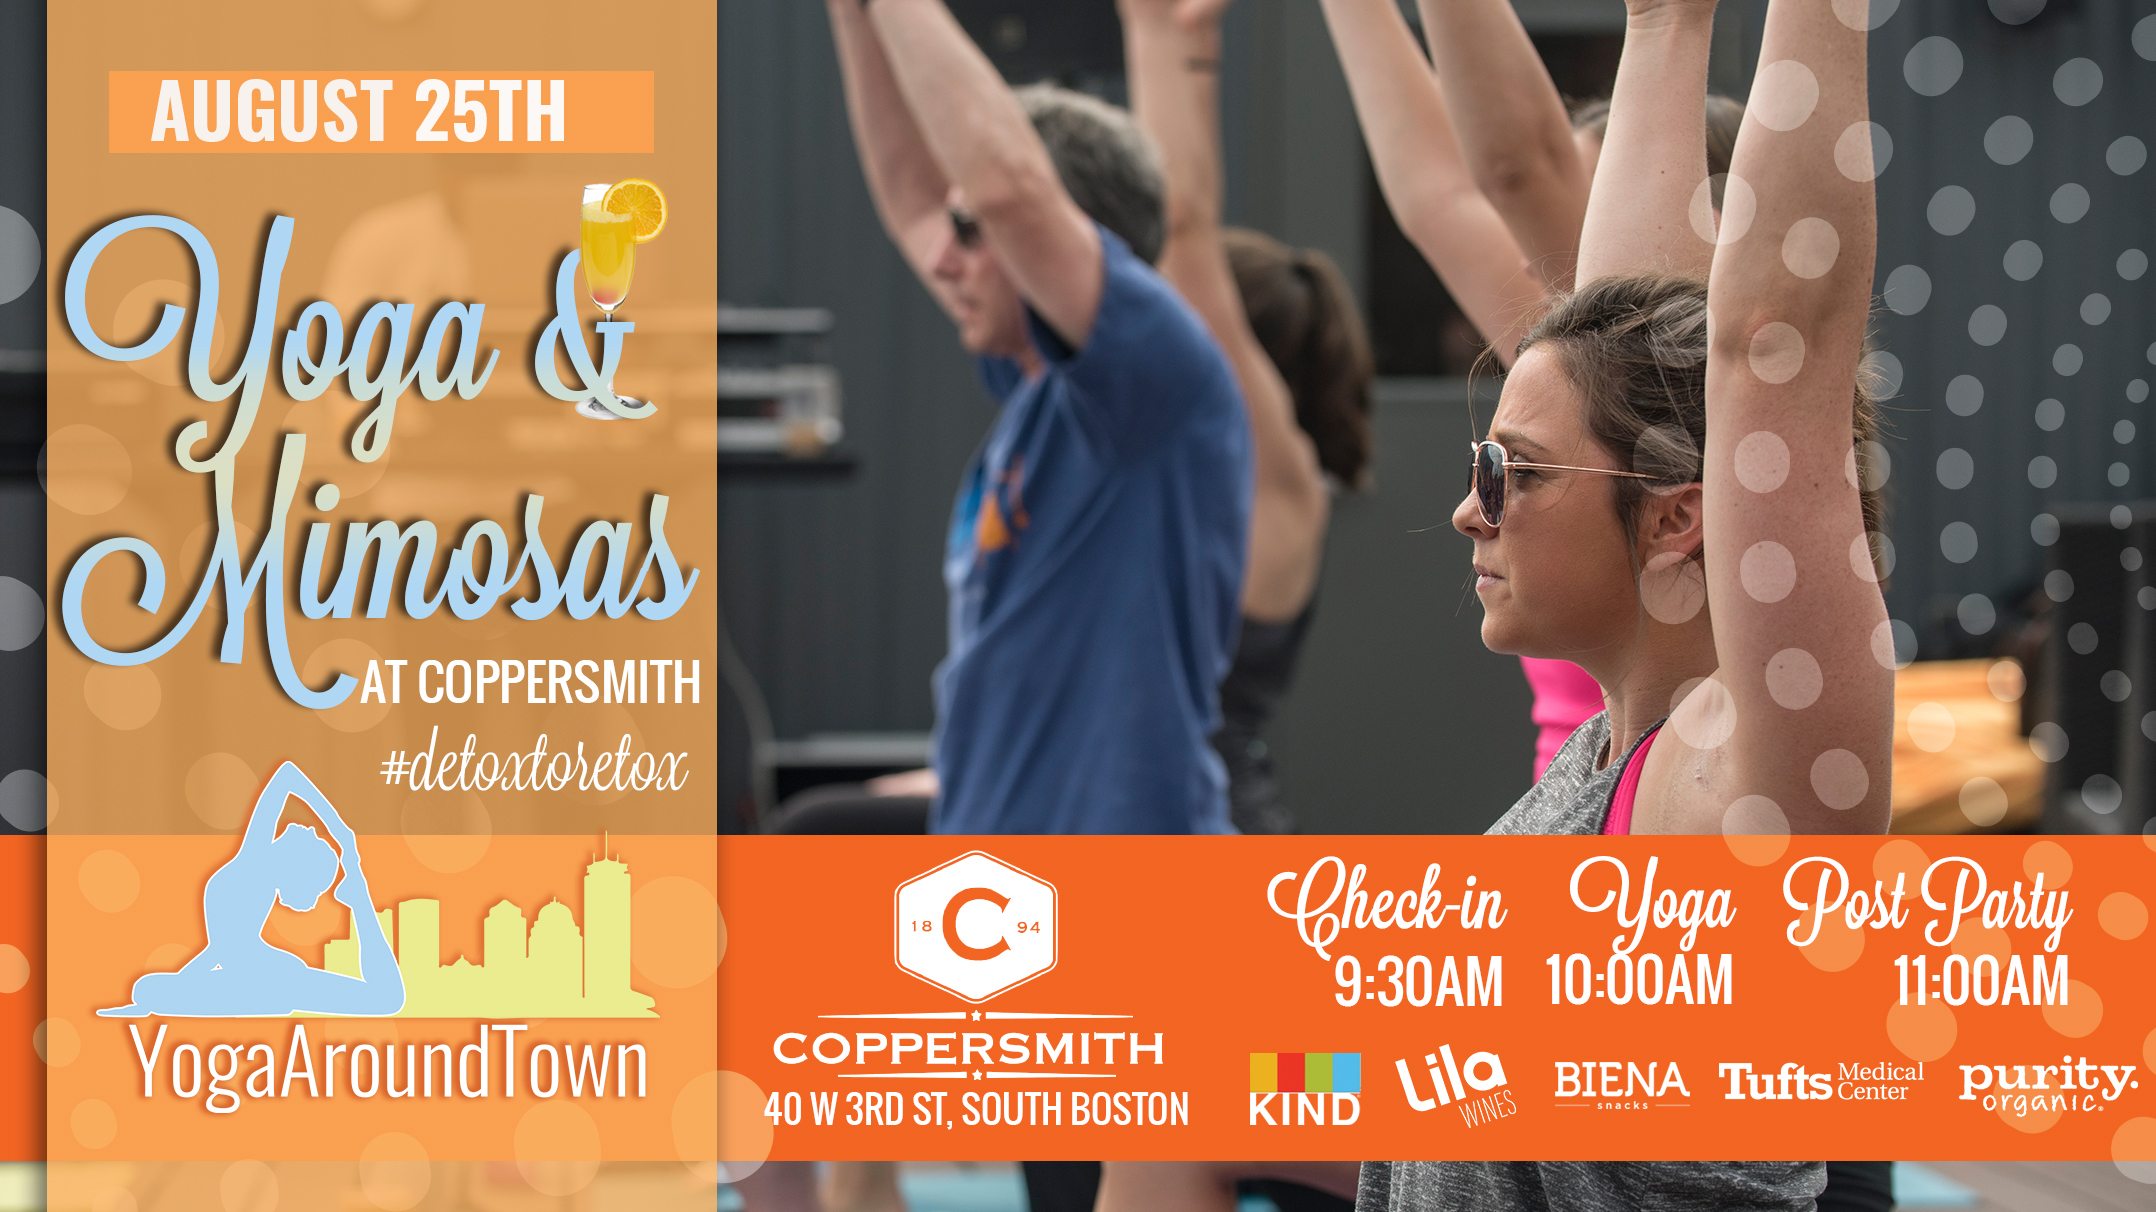 Start your Saturday with Yoga & Mimosas at Coppersmith in Southie! We will lead you through a fun all level flow that will have you moving, breathing and working up a sweat for 60-minutes before we #detoxtoretox with mimosas afterward!  All tickets include a Lila Wine Sparkling Mimosa and goodies from our sponsors!   Check out our full Yoga & Mimosas at Coppersmith series and be sure to register for the correct date!   Check-in: 9:30 -10:00 am    Class: 10-11:00am    Post-Party: Directly following class includes a Lila Wine & Purity Organic Mimosa